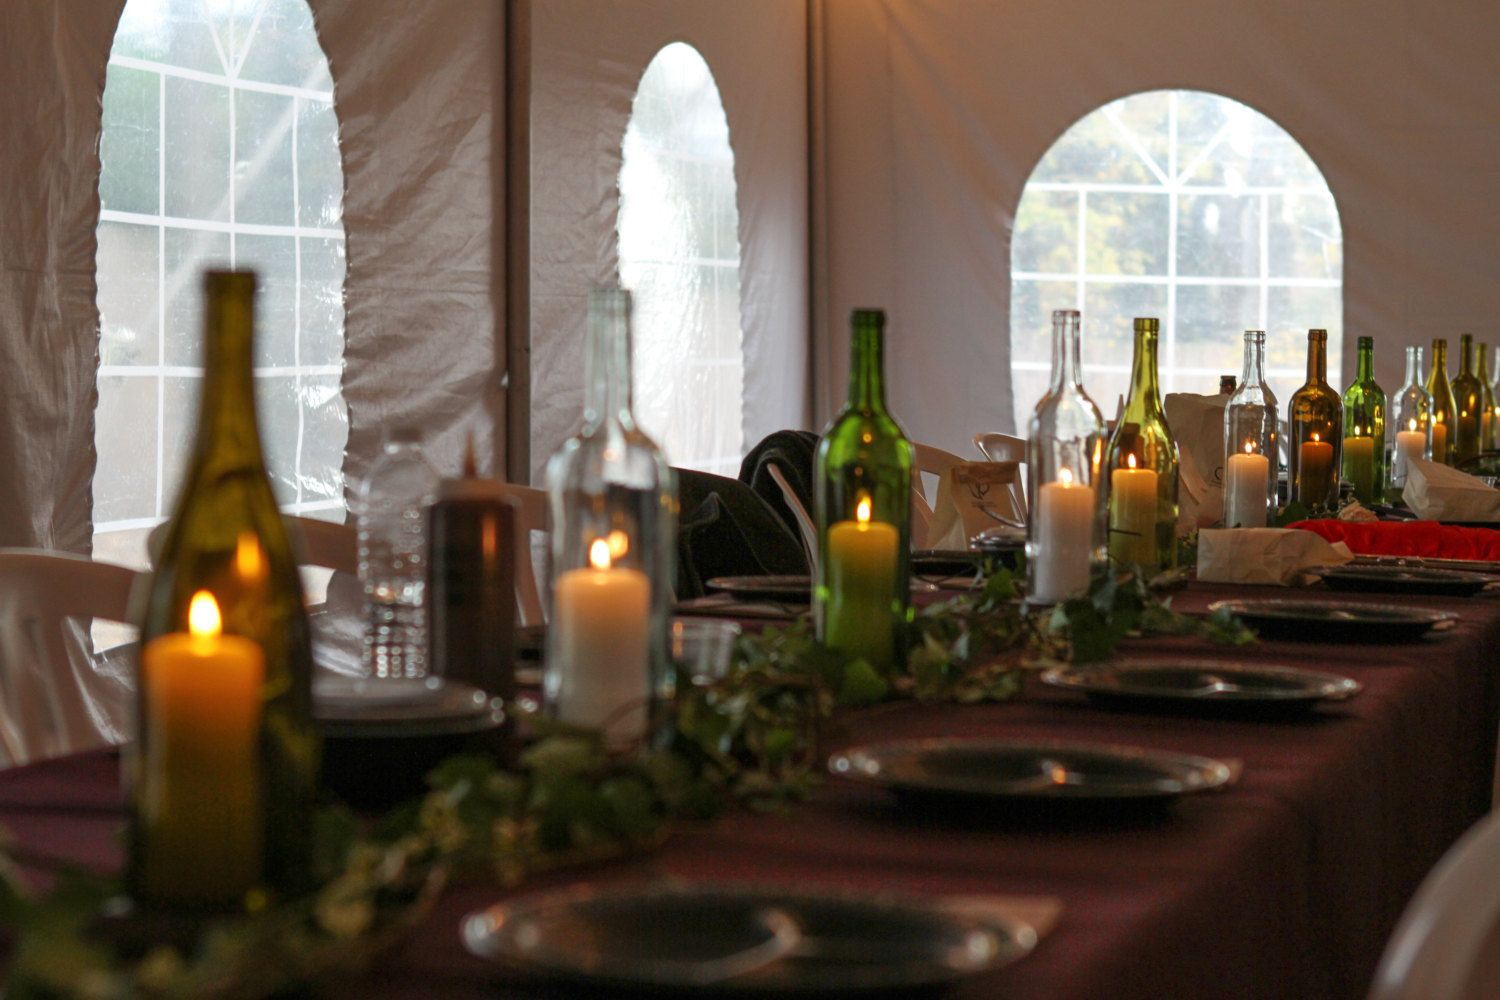 12 Cut Wine Bottle Centerpiece Lanterns for Weddings and